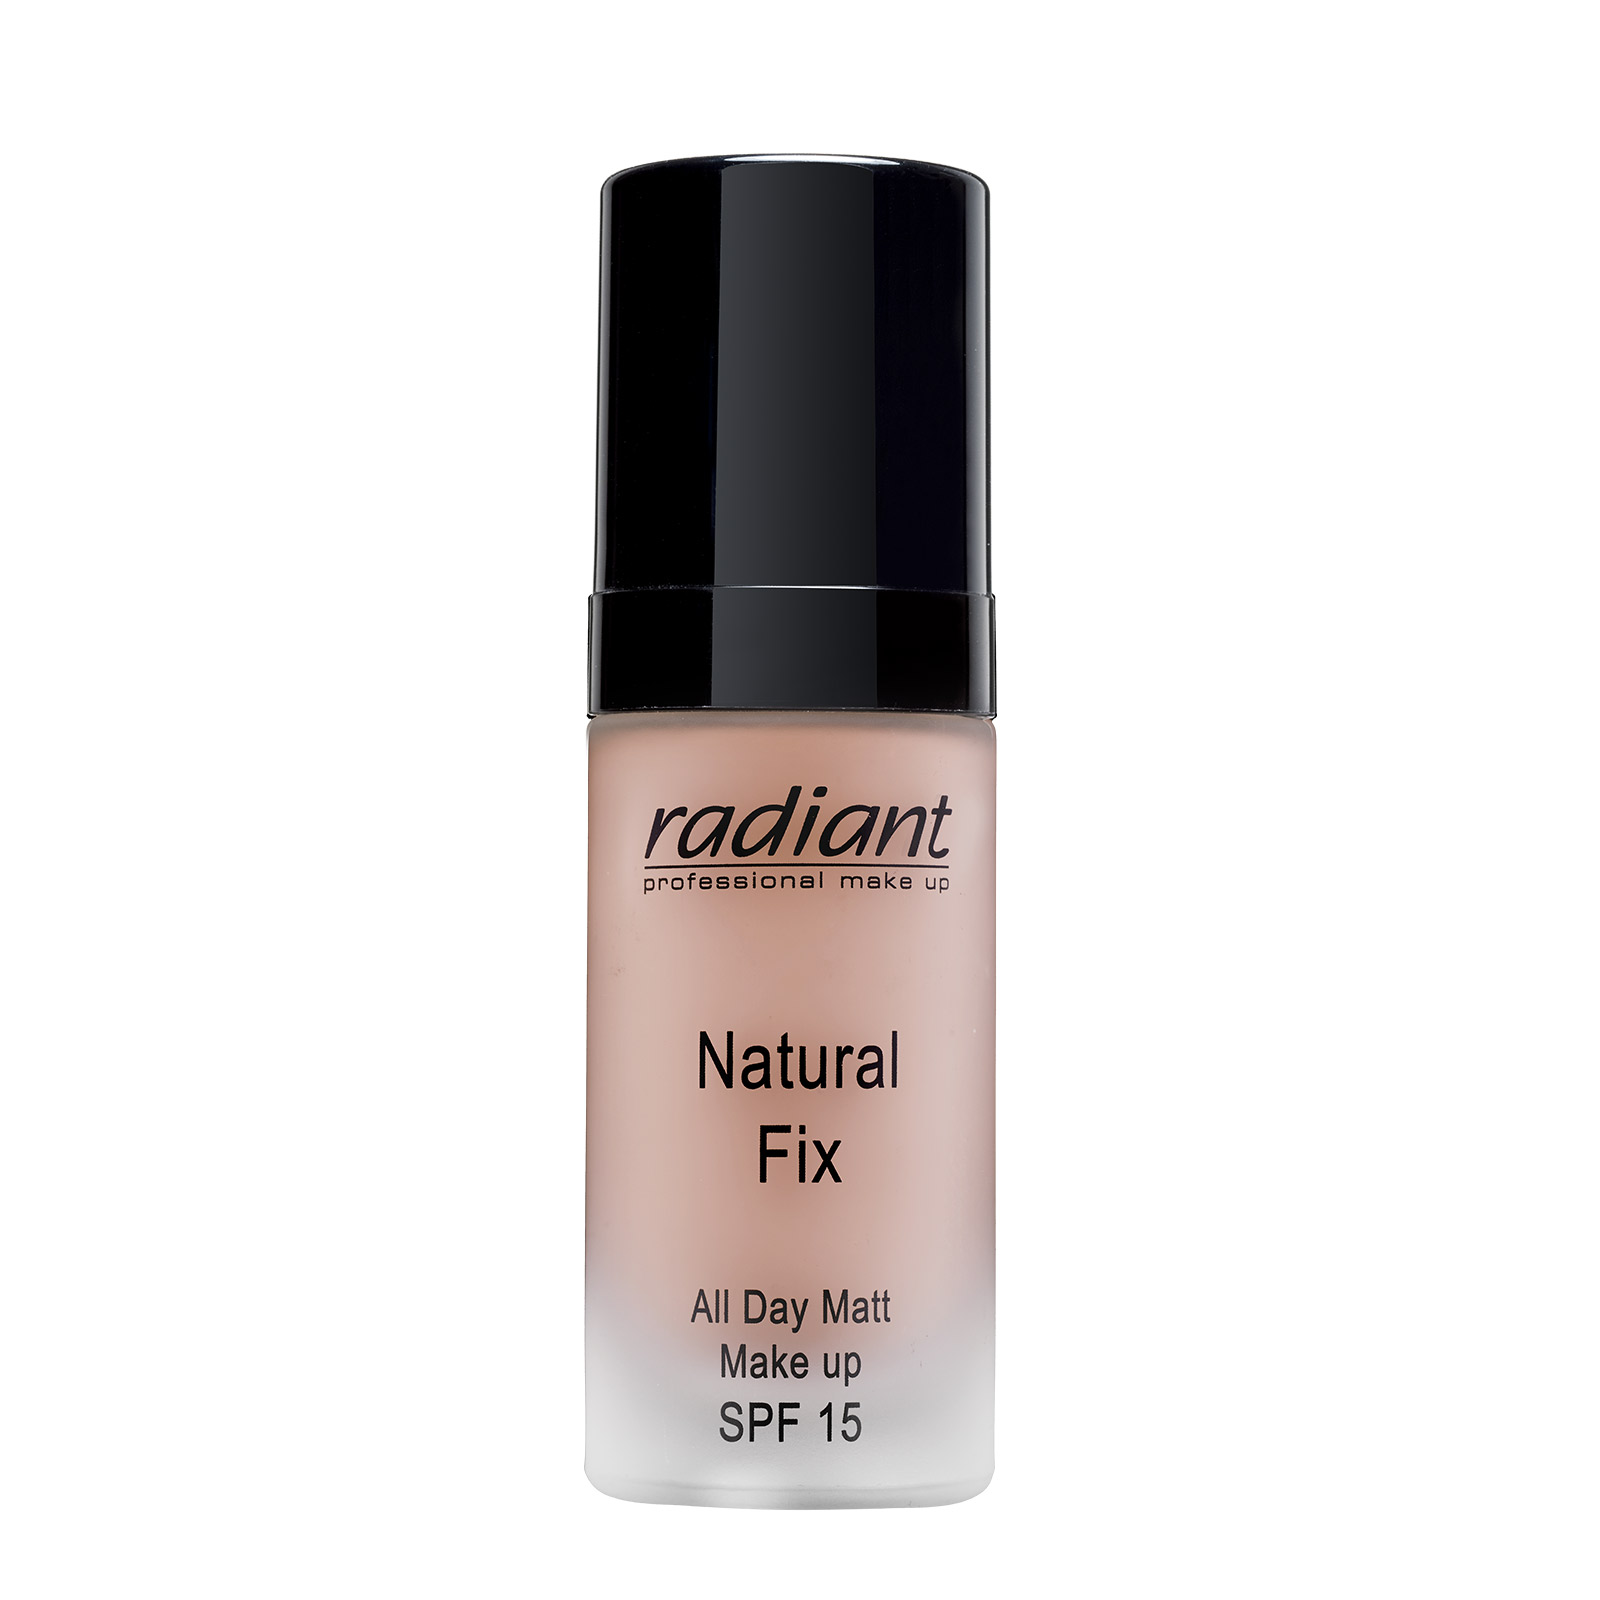 NATURAL FIX ALL DAY MATT MAKE UP SPF 15 (04 Peachy Beige)